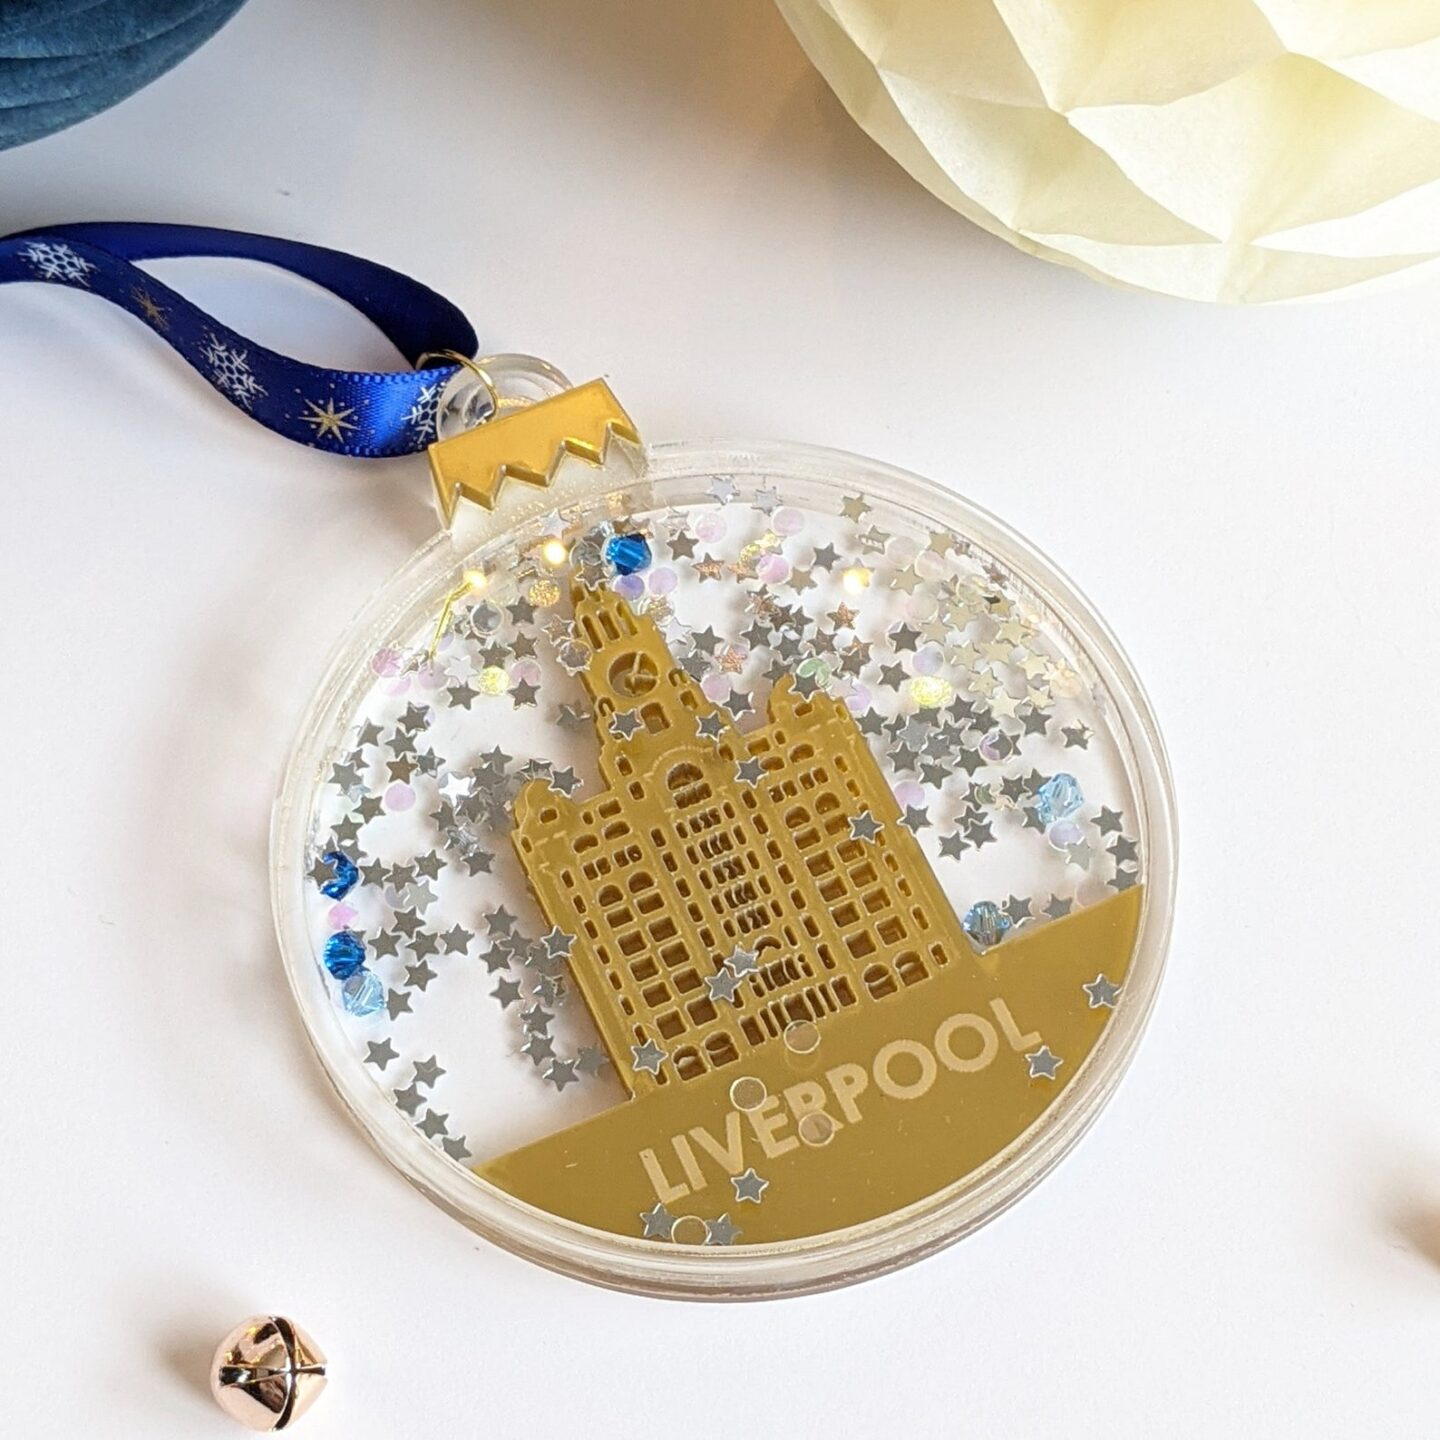 clear perspex flat Christmas tree decoration. Inside the perspex is a gold coloured Liver Building above the words 'Liverpool' engraved into the gold.